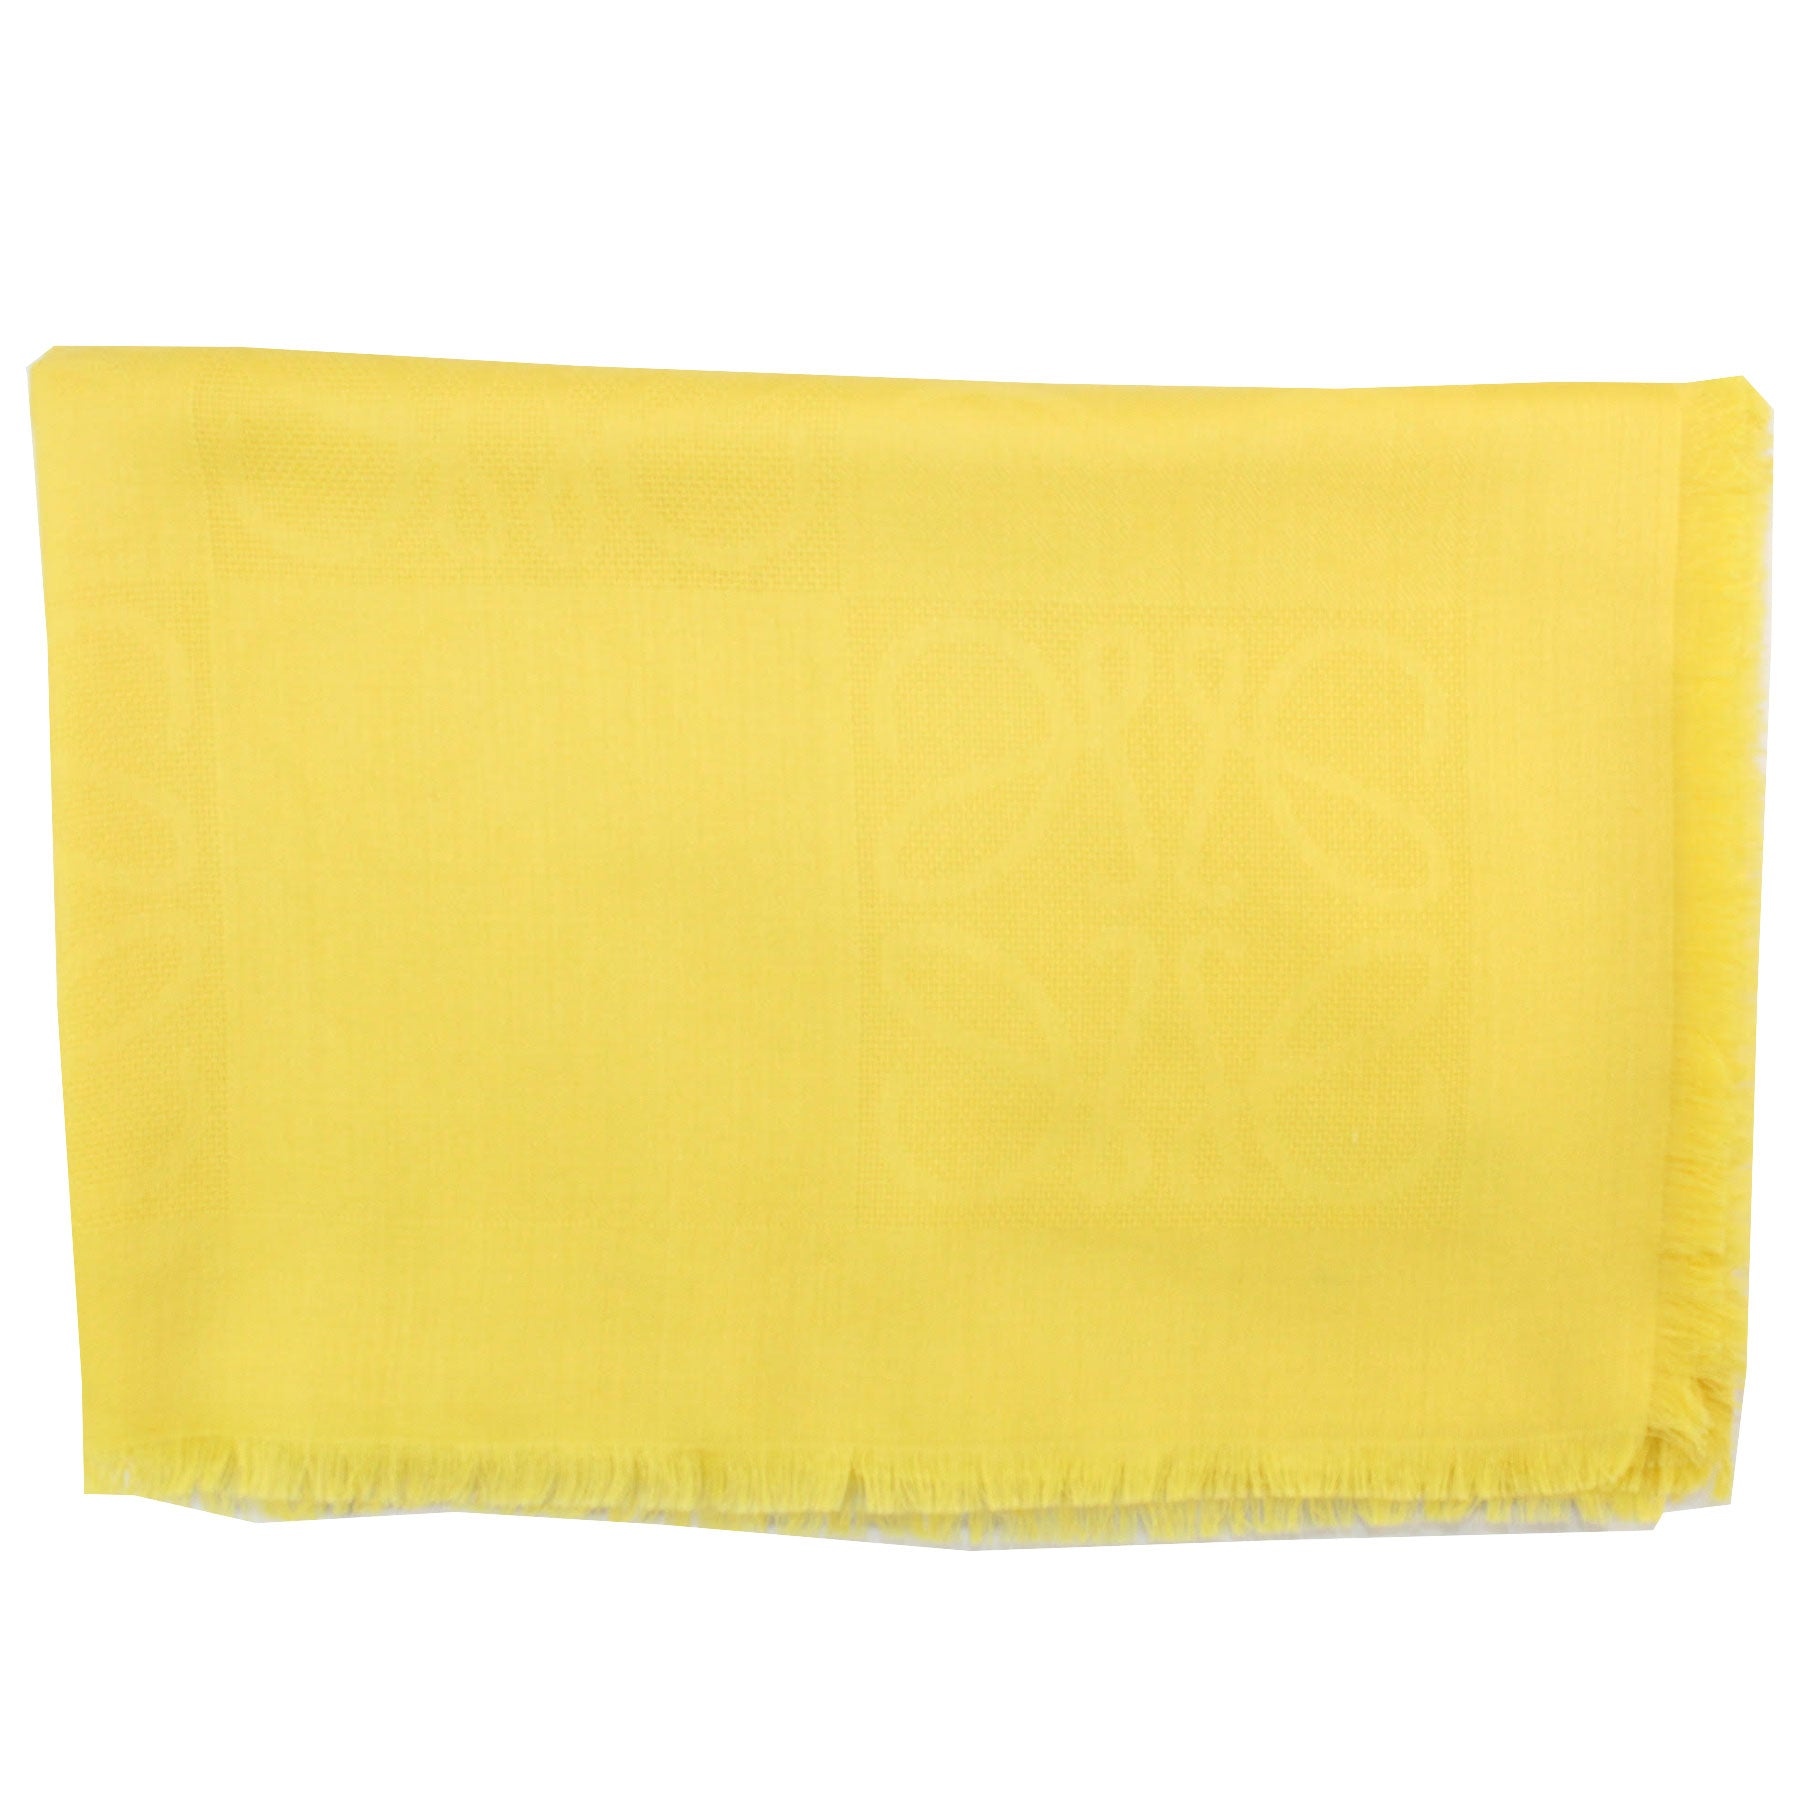 Loewe Silk Scarf Yellow Solid Wosica Design - Large Square Scarf